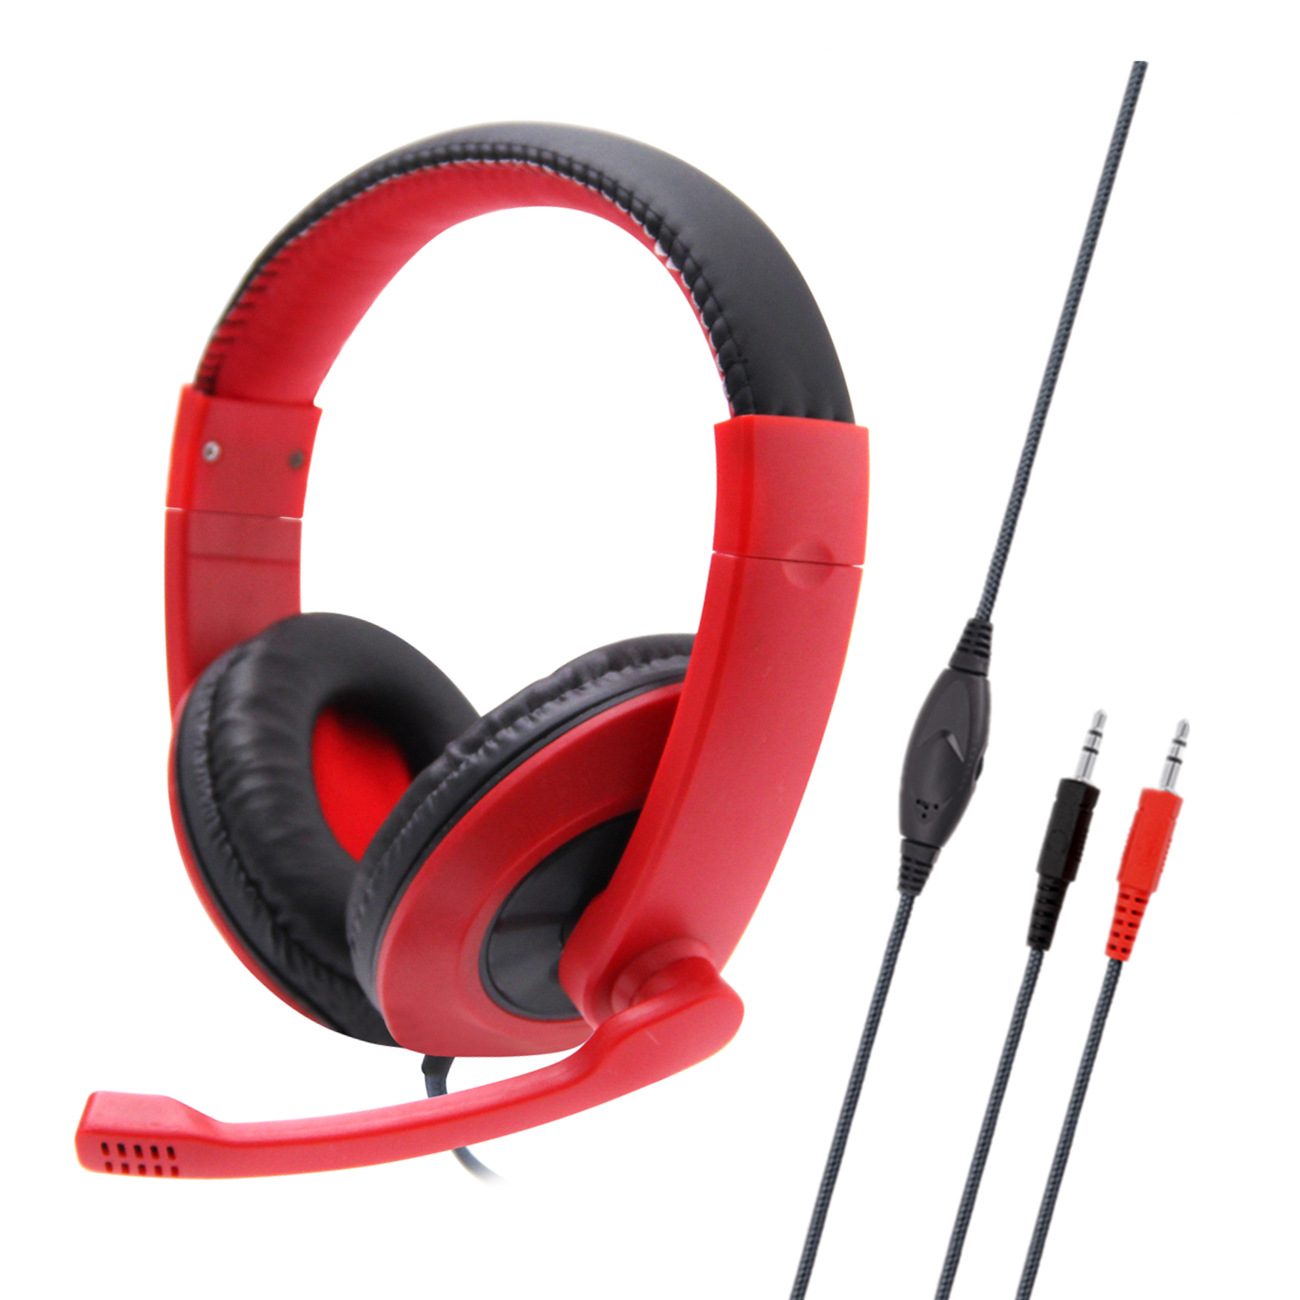 Anti-violence Computer Headset Portable Stereo Volume Control Headphone for PC Laptop with Mic SY722MV red PC does not shine with packaging